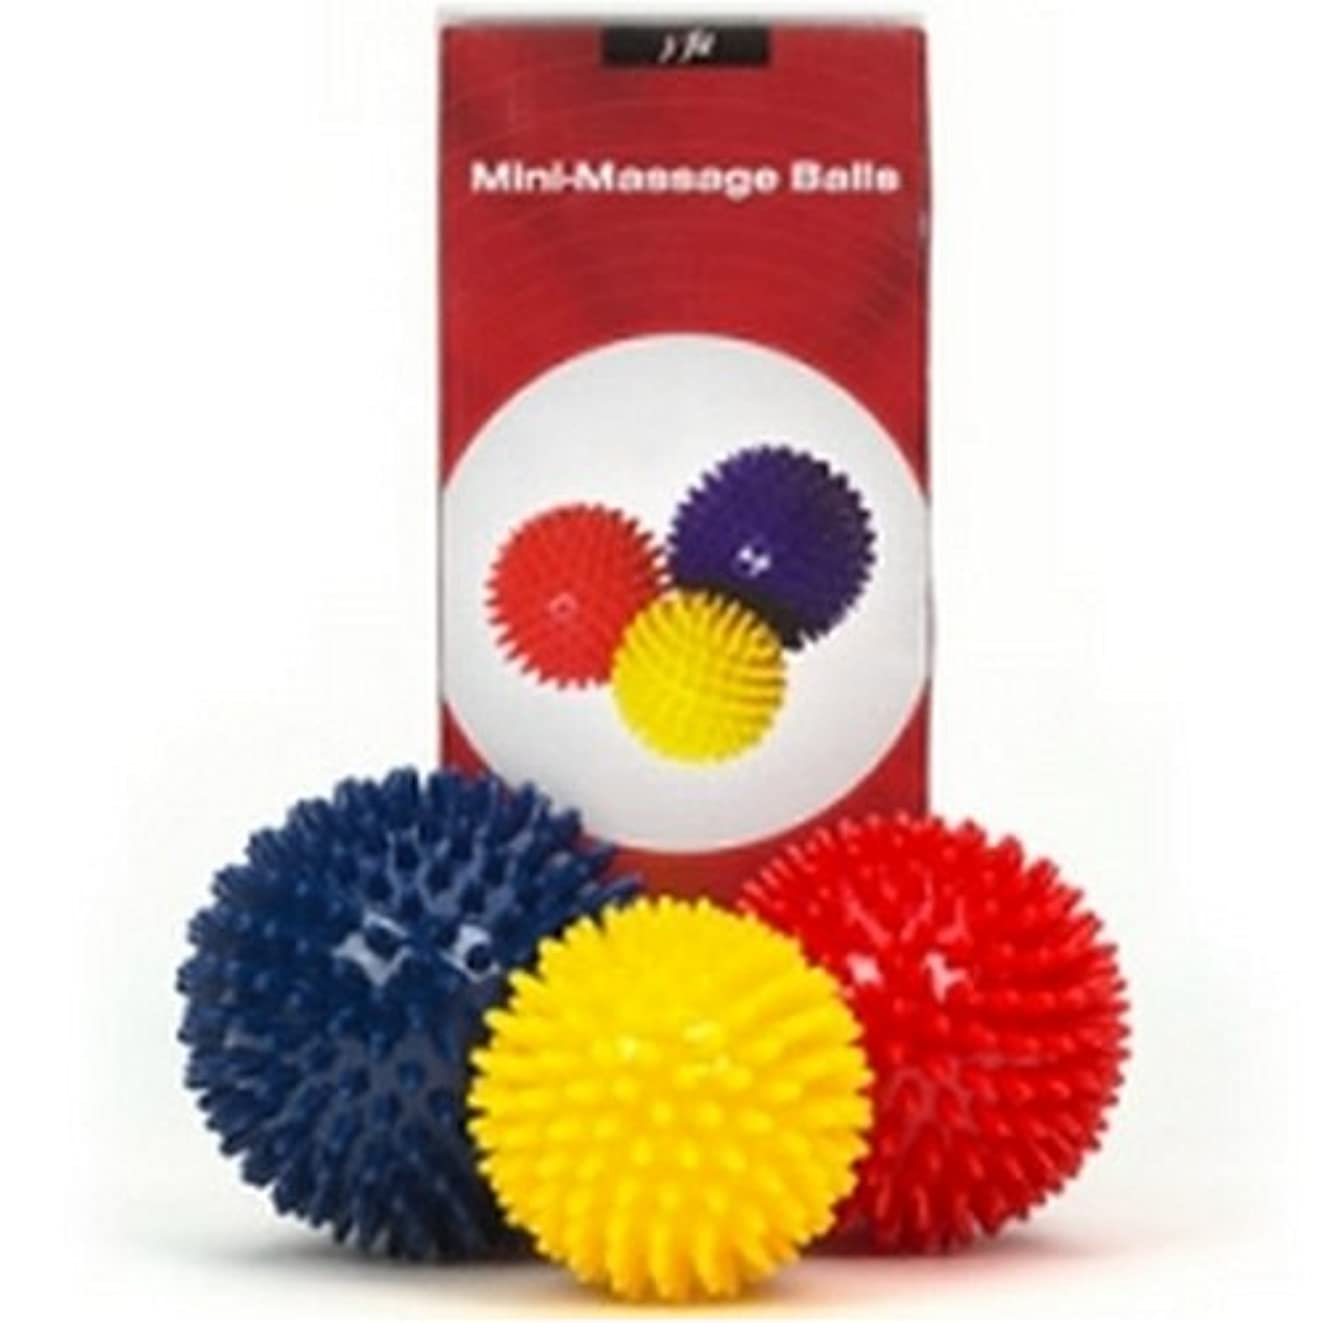 責任住人流J-Fit Mini-Massage Balls 3 balls ?????